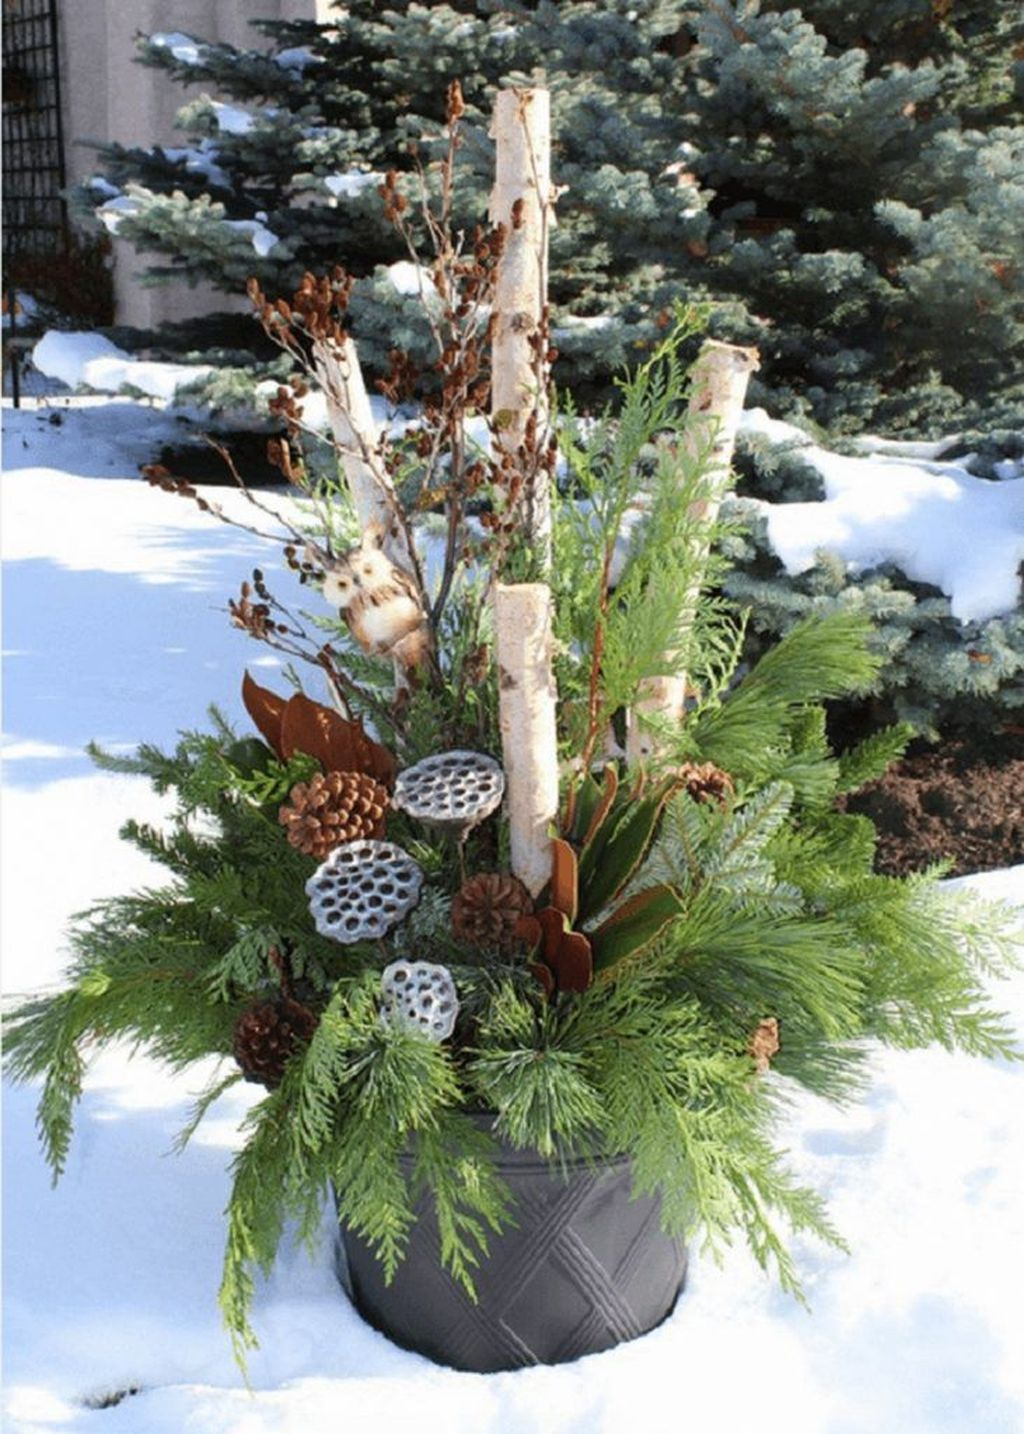 Marvelous Outdoor Holiday Planter Ideas To Beauty Porch Décor 11